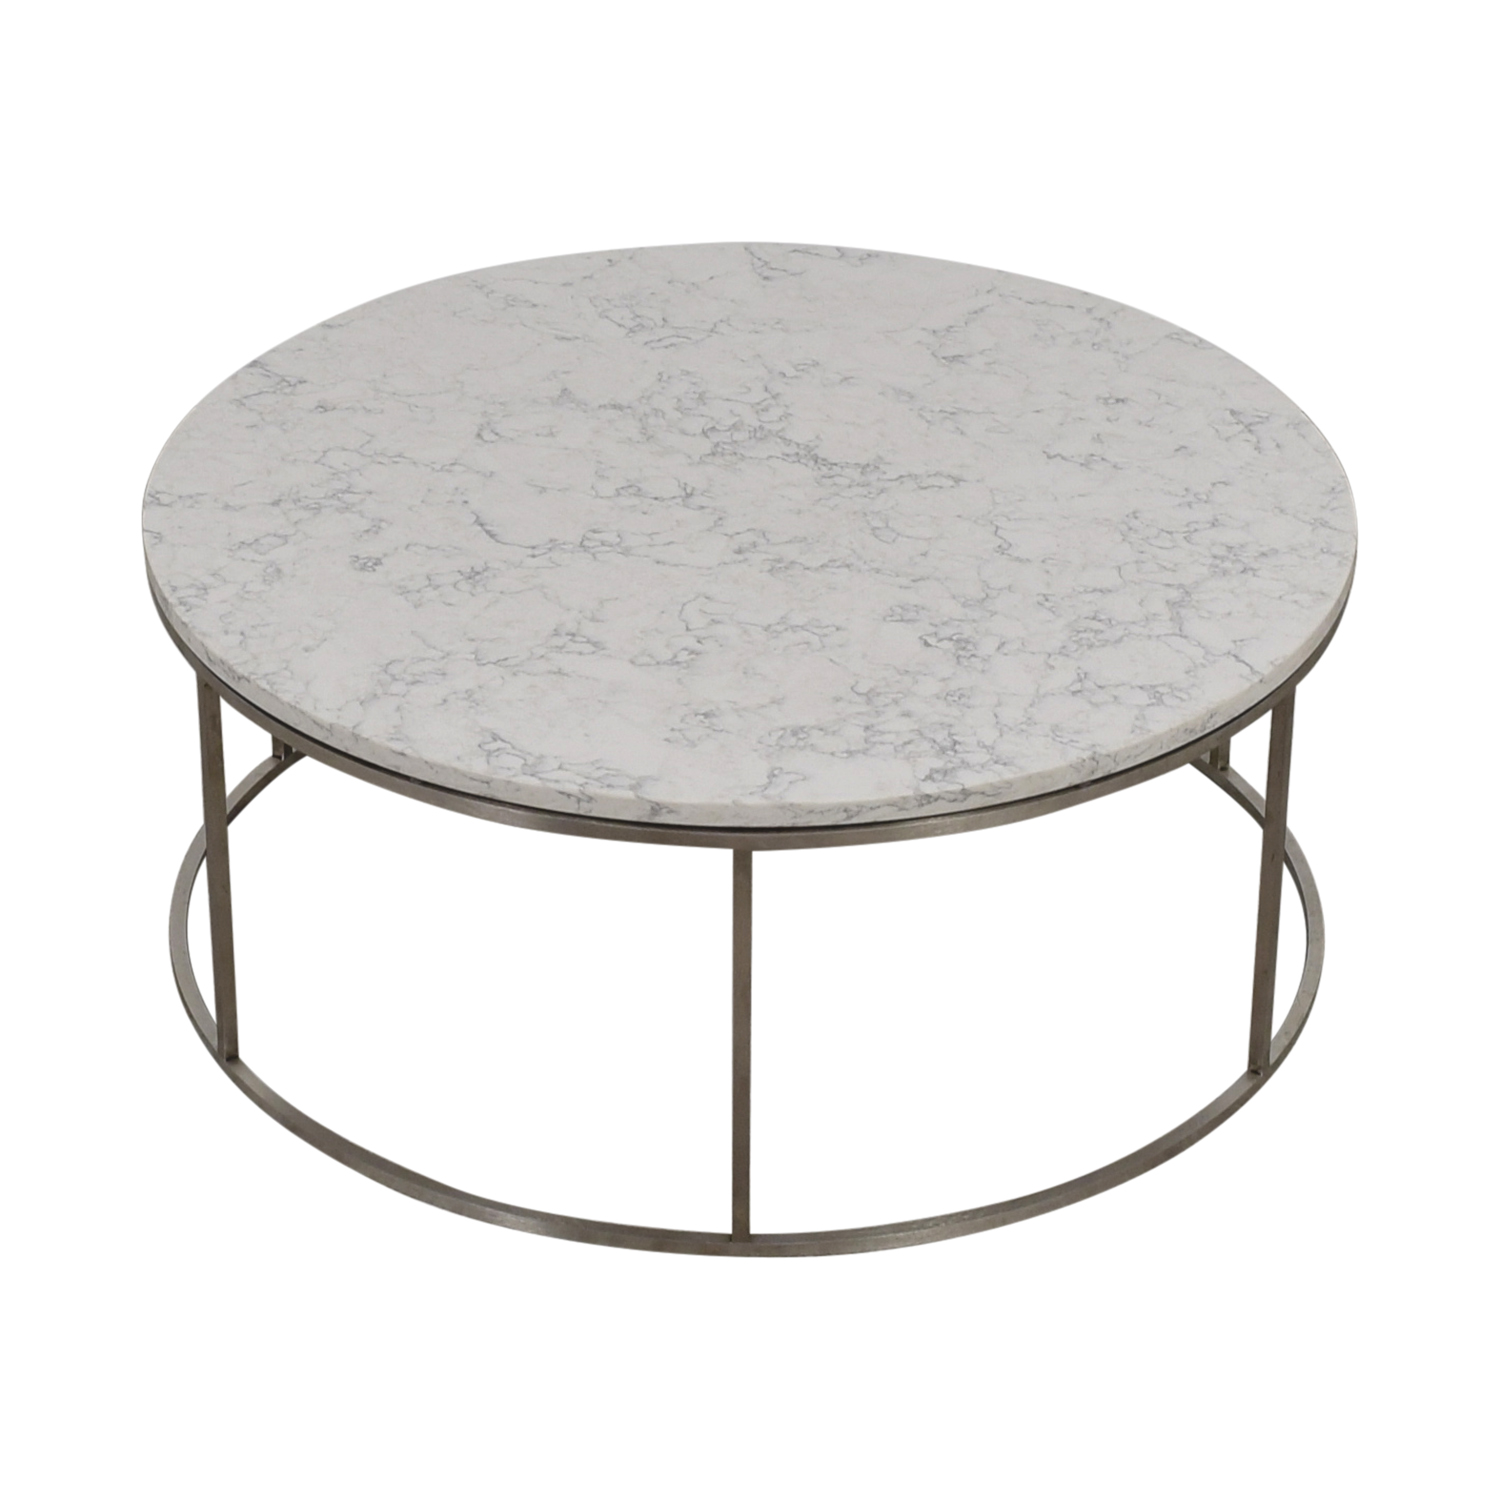 Room & Board Room & Board Round Marble Top Coffee Table Coffee Tables